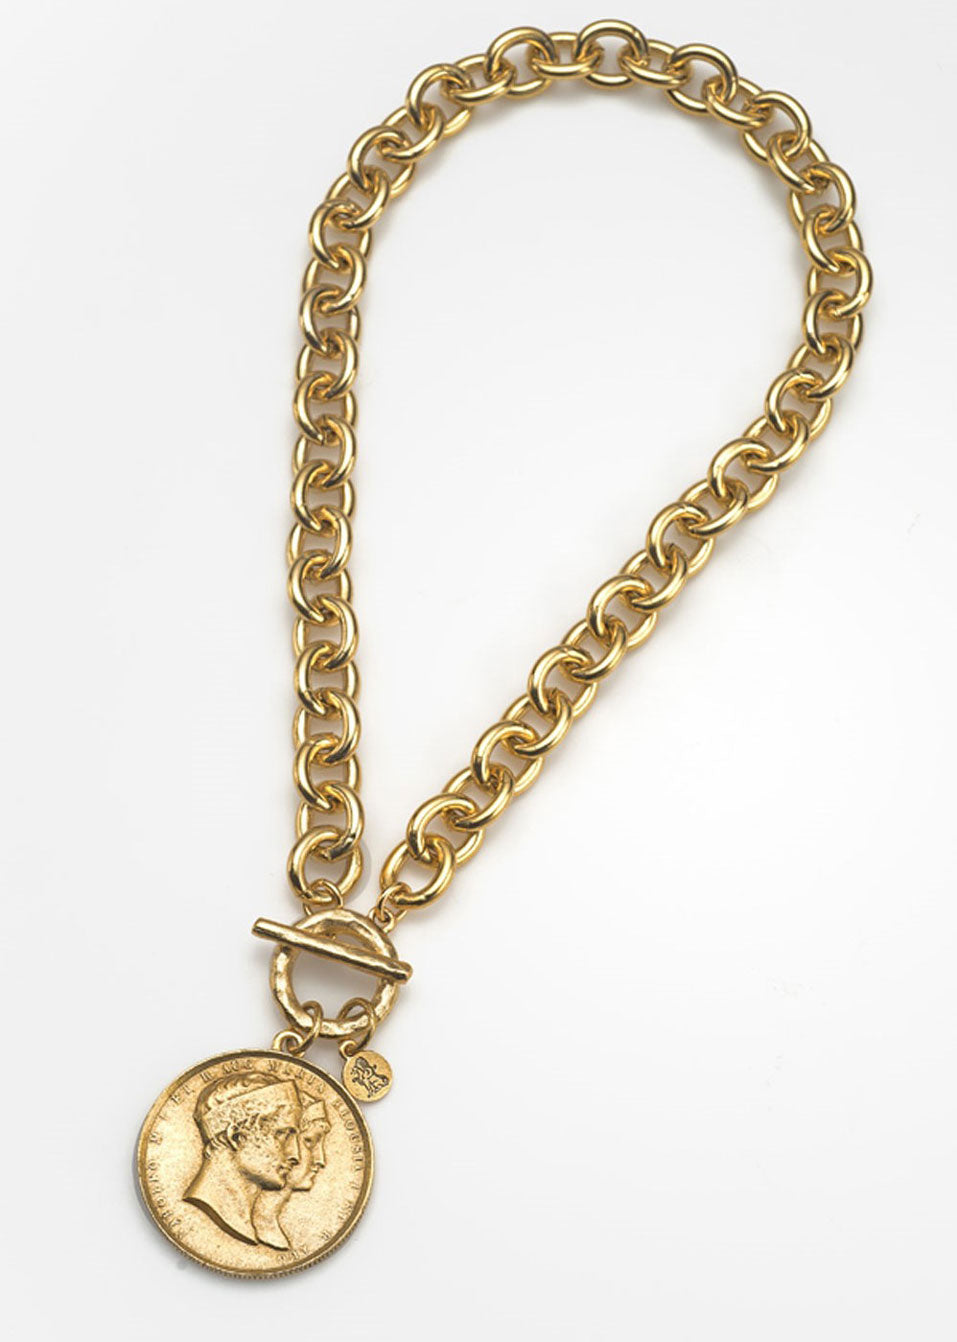 Napoleon Medallion Necklace